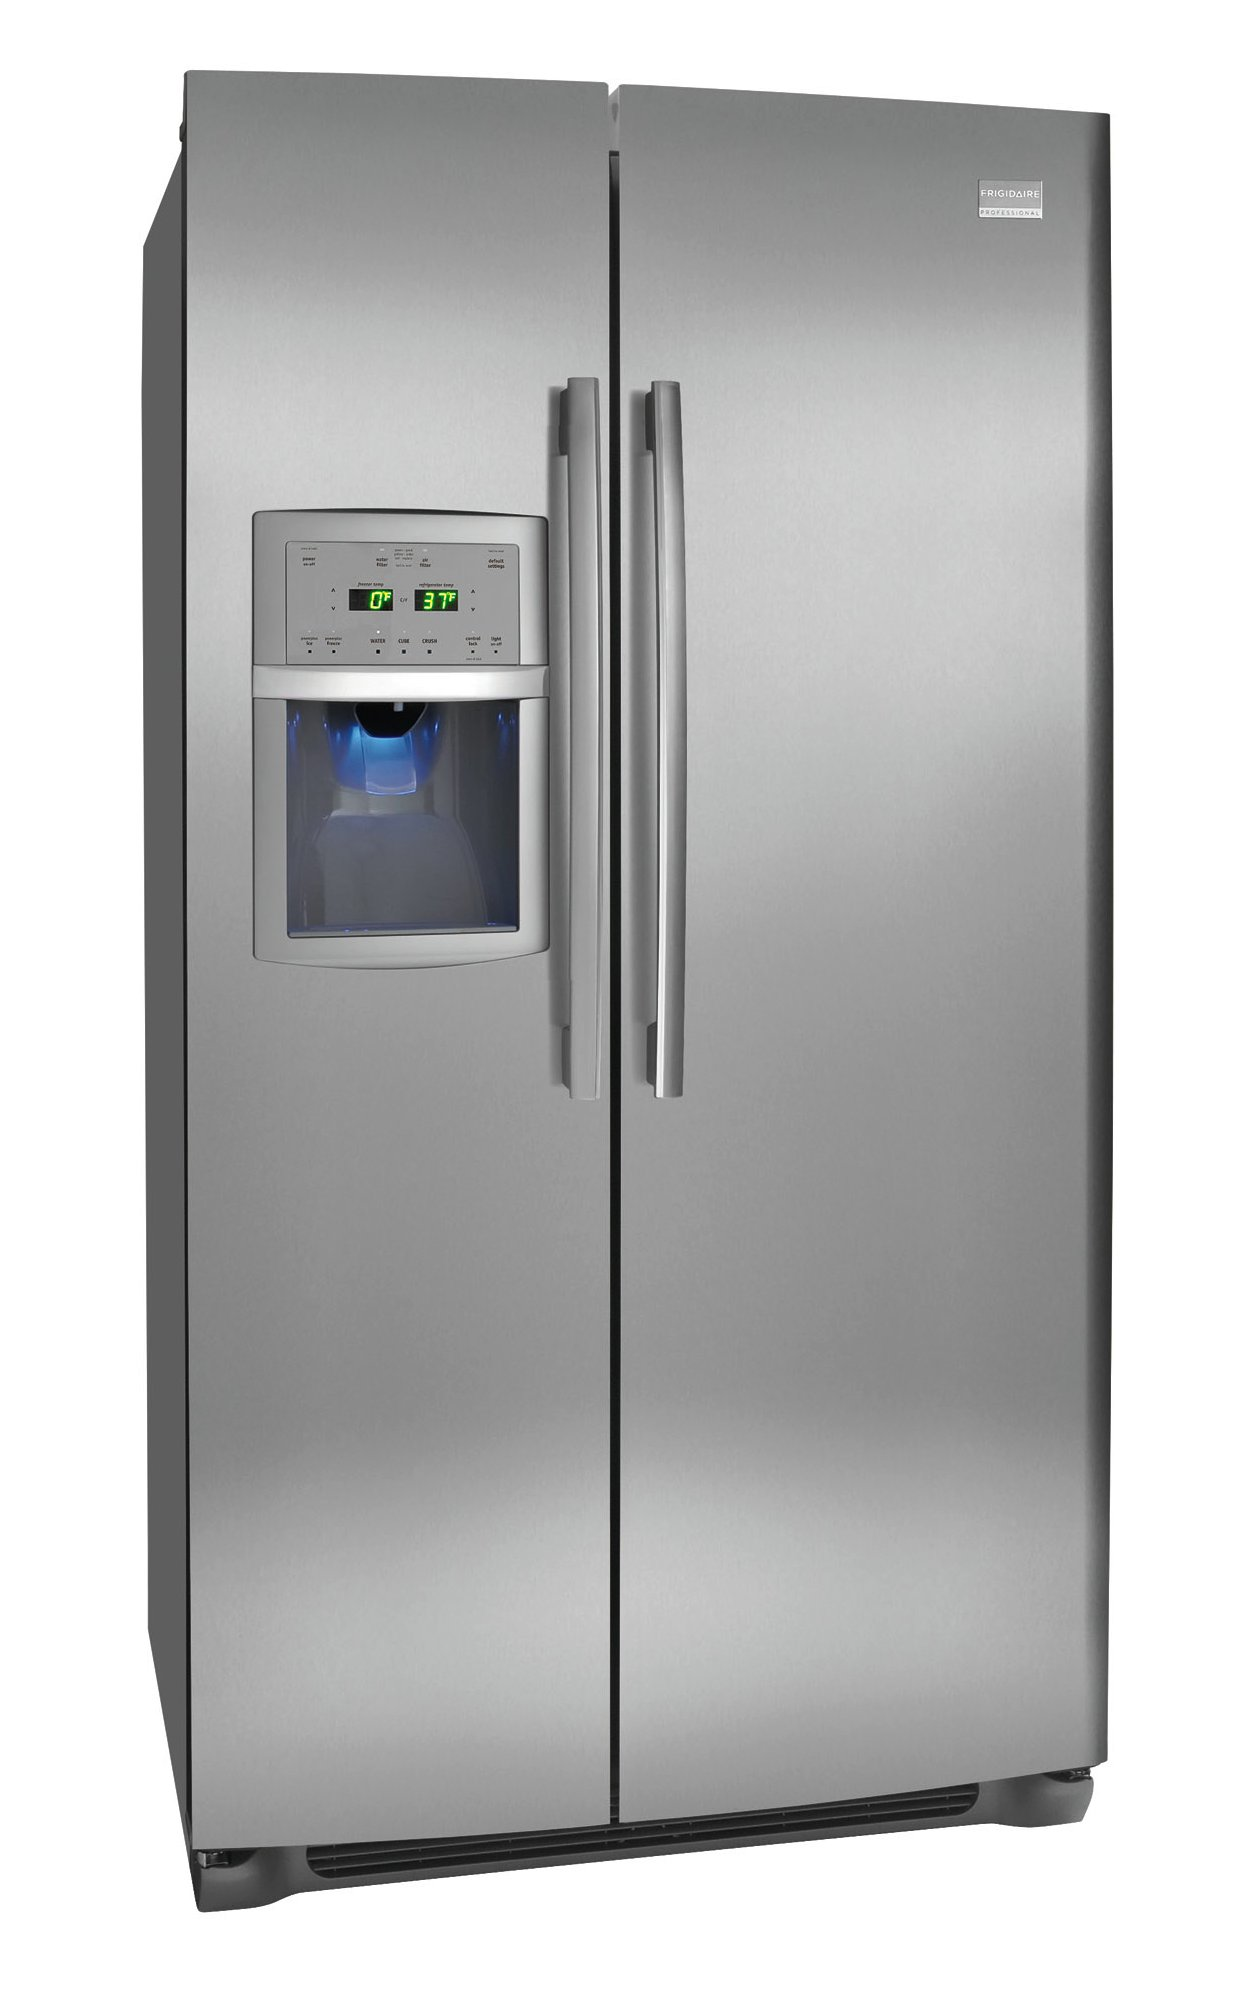 Frigidaire appliances us appliance low prices on ge maytag for Frigidaire armoire